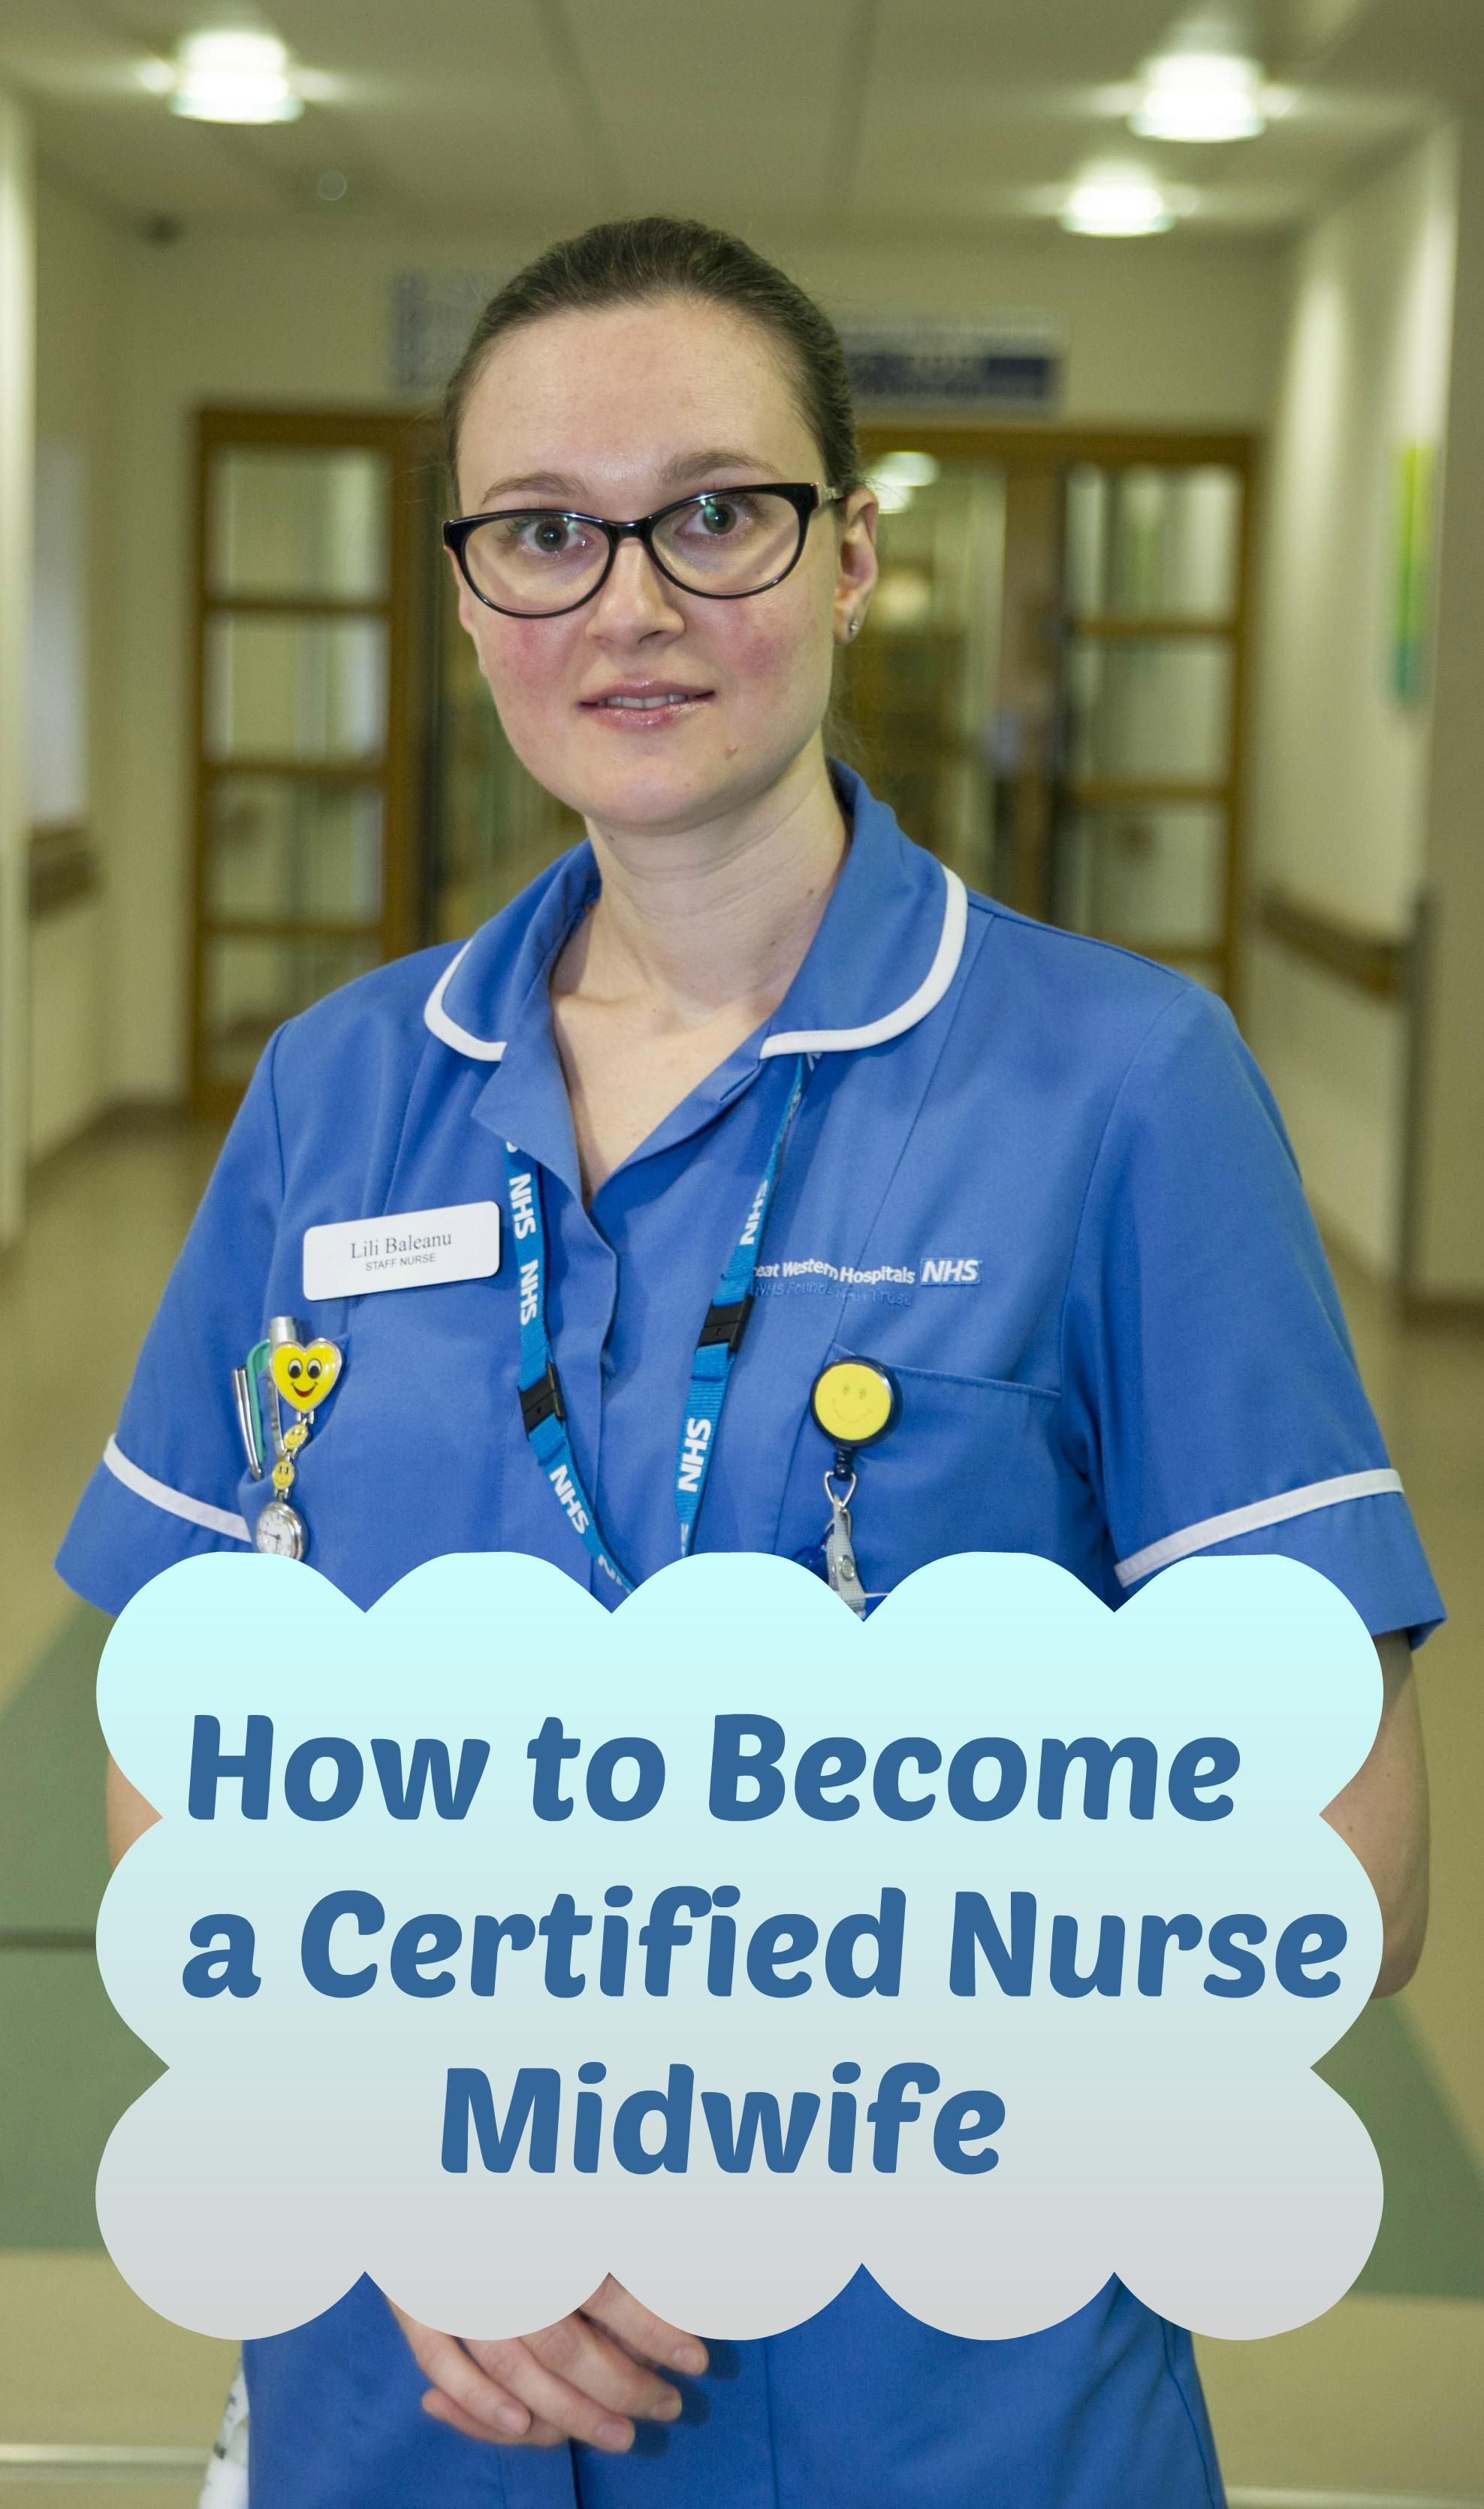 Certified nurse midwife job description and salary and